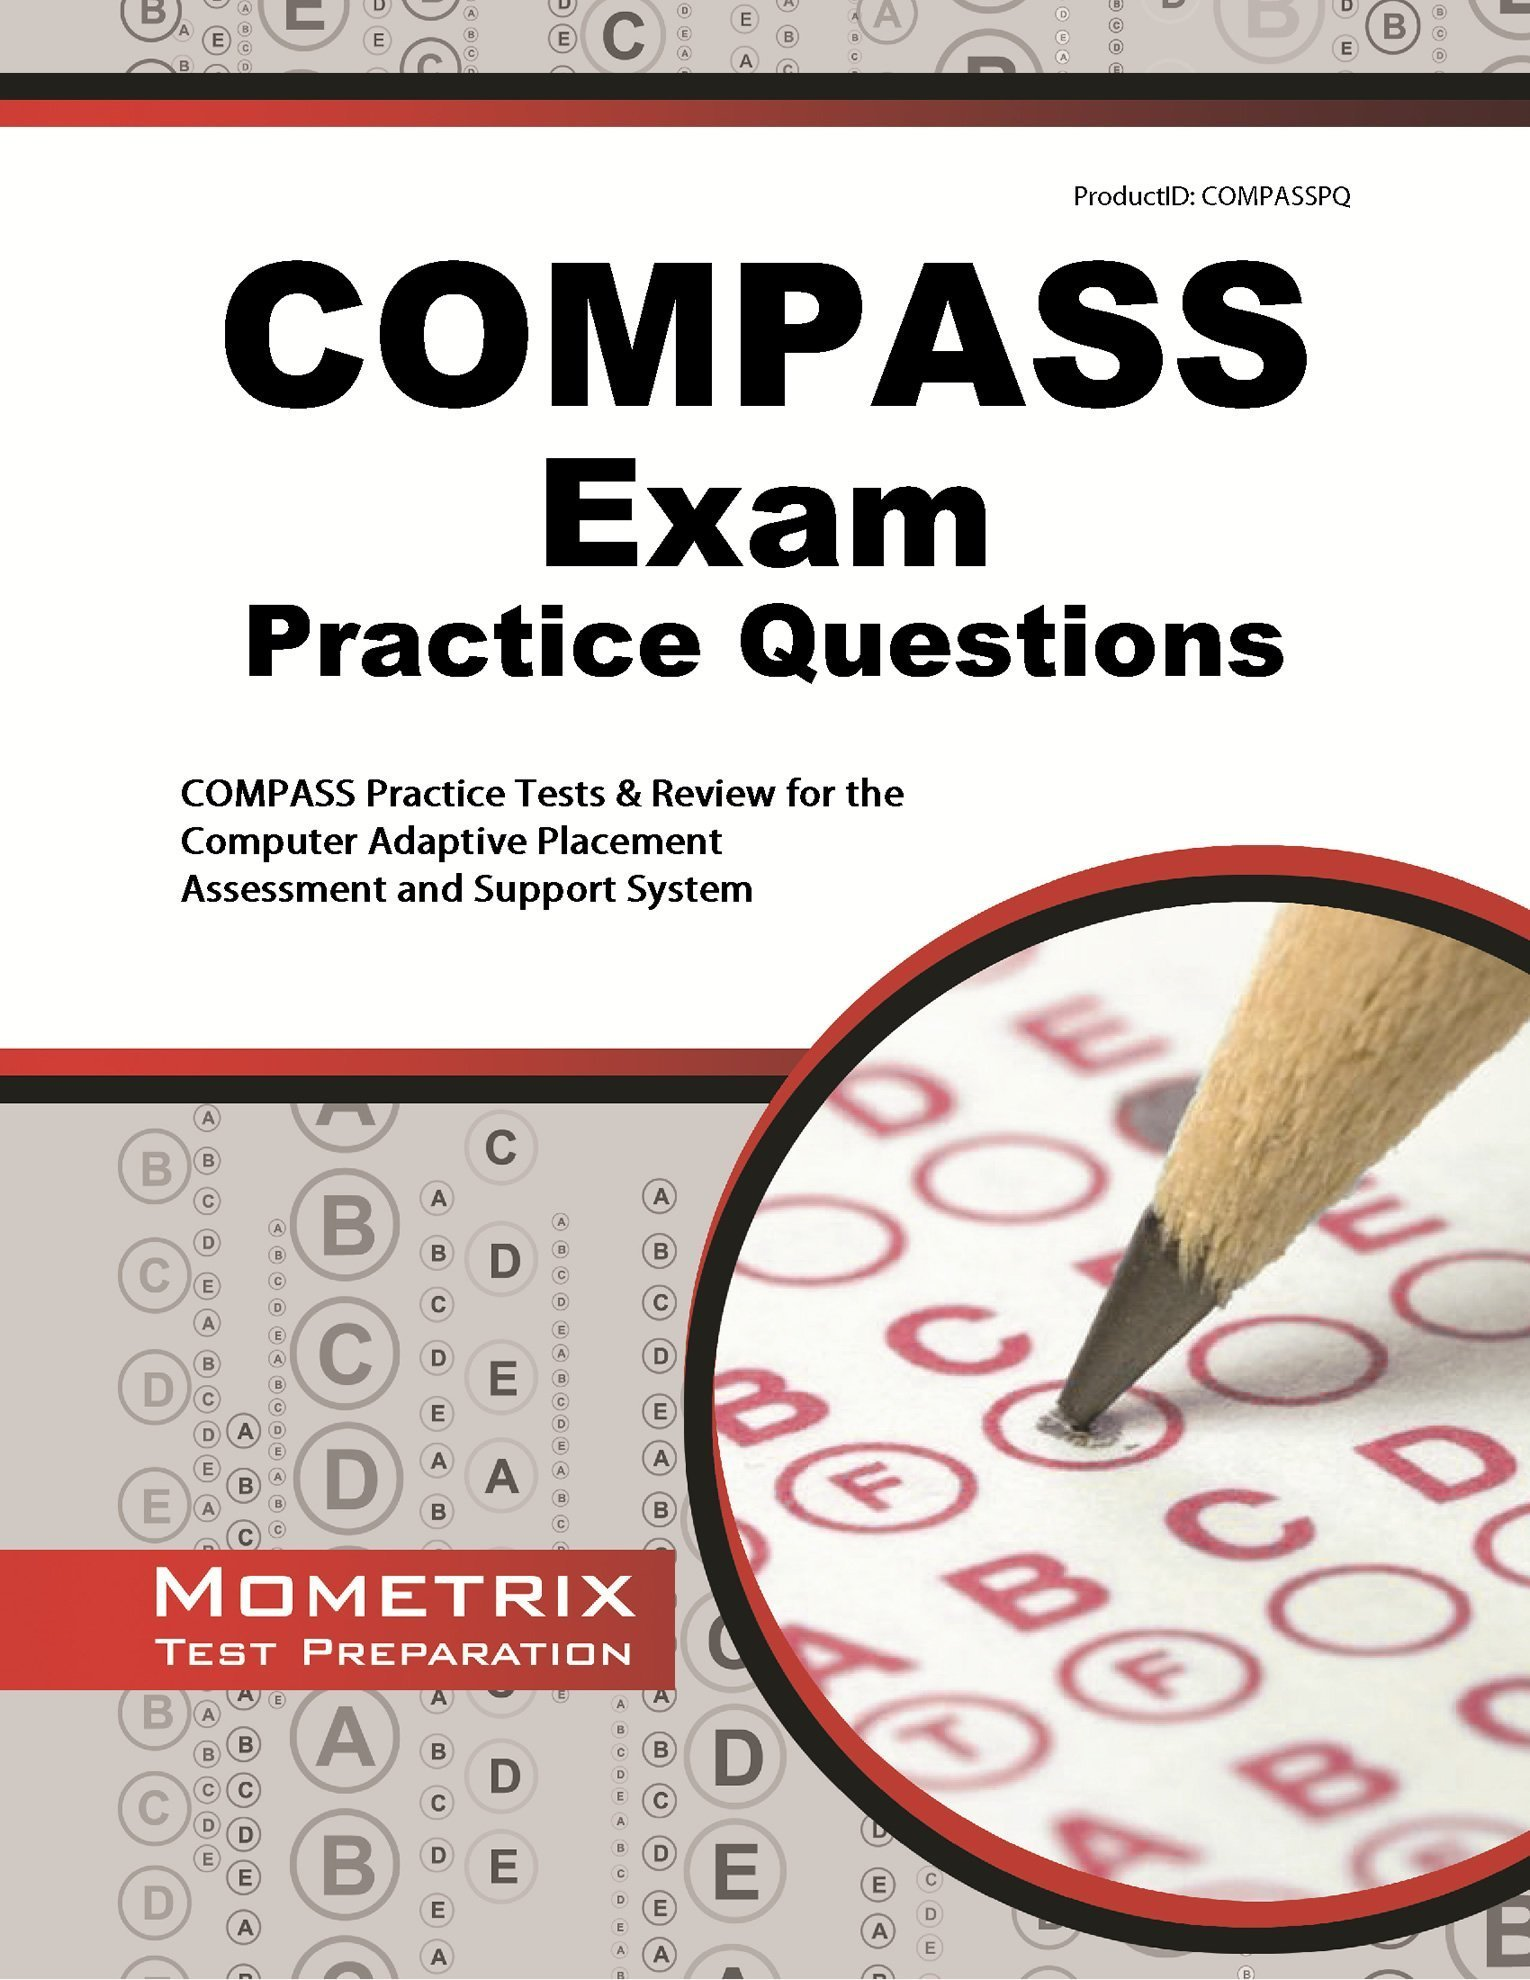 Download COMPASS Exam Practice Questions: Practice Tests & Review for the Computer Adaptive Placement Assessment and Support System PDF